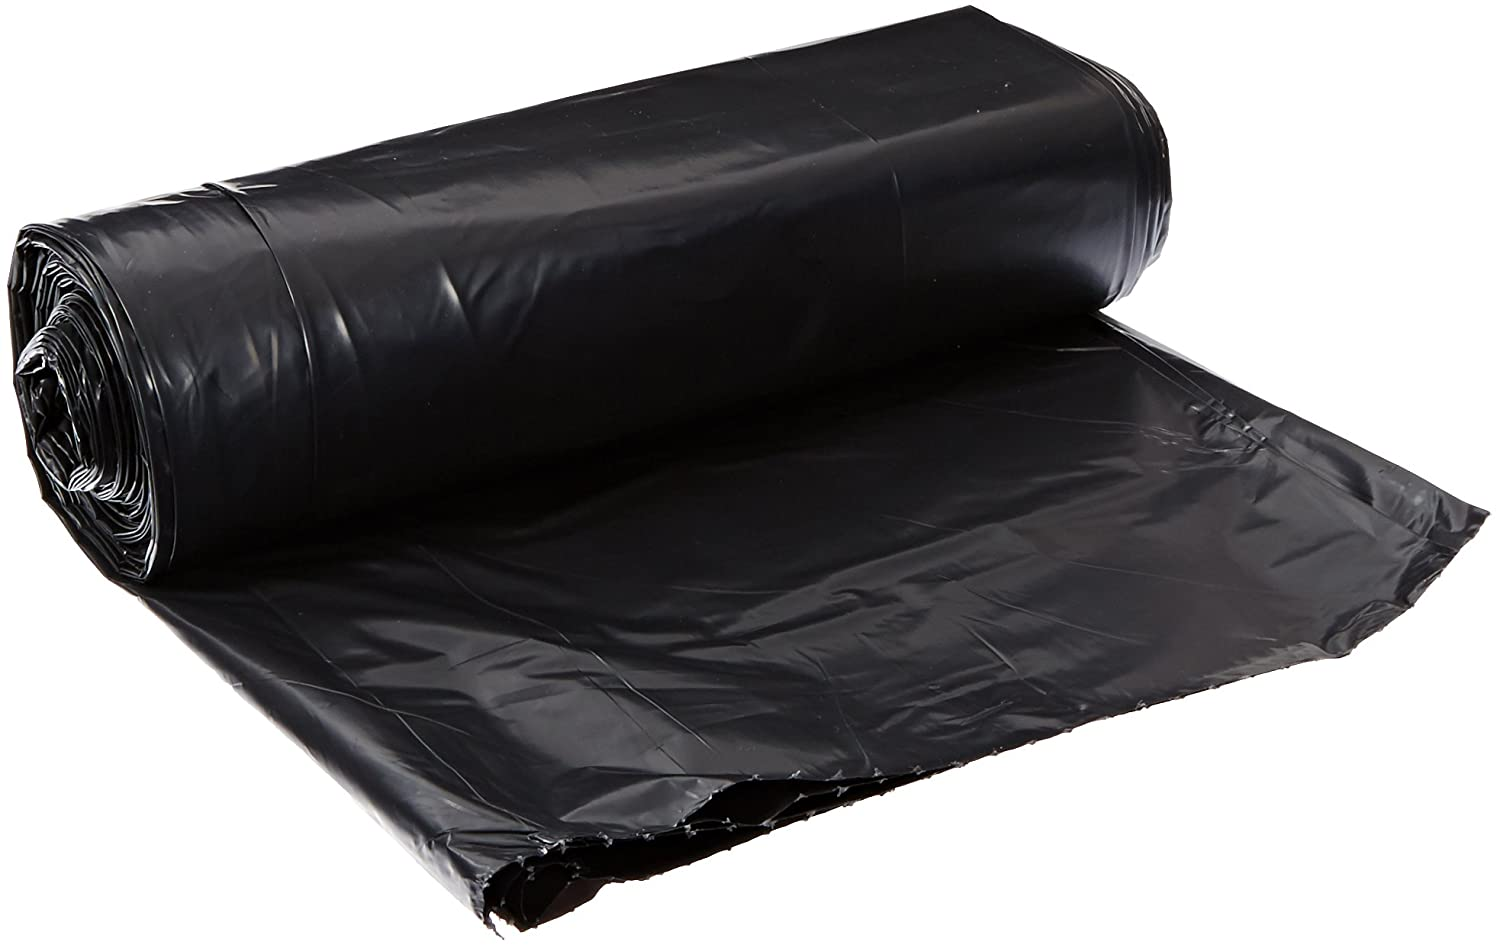 Black 1.6mil 10 Roll//Carton Linear Low Density Can Liners 40 x 46 10 Bag//Roll 3 Cartons